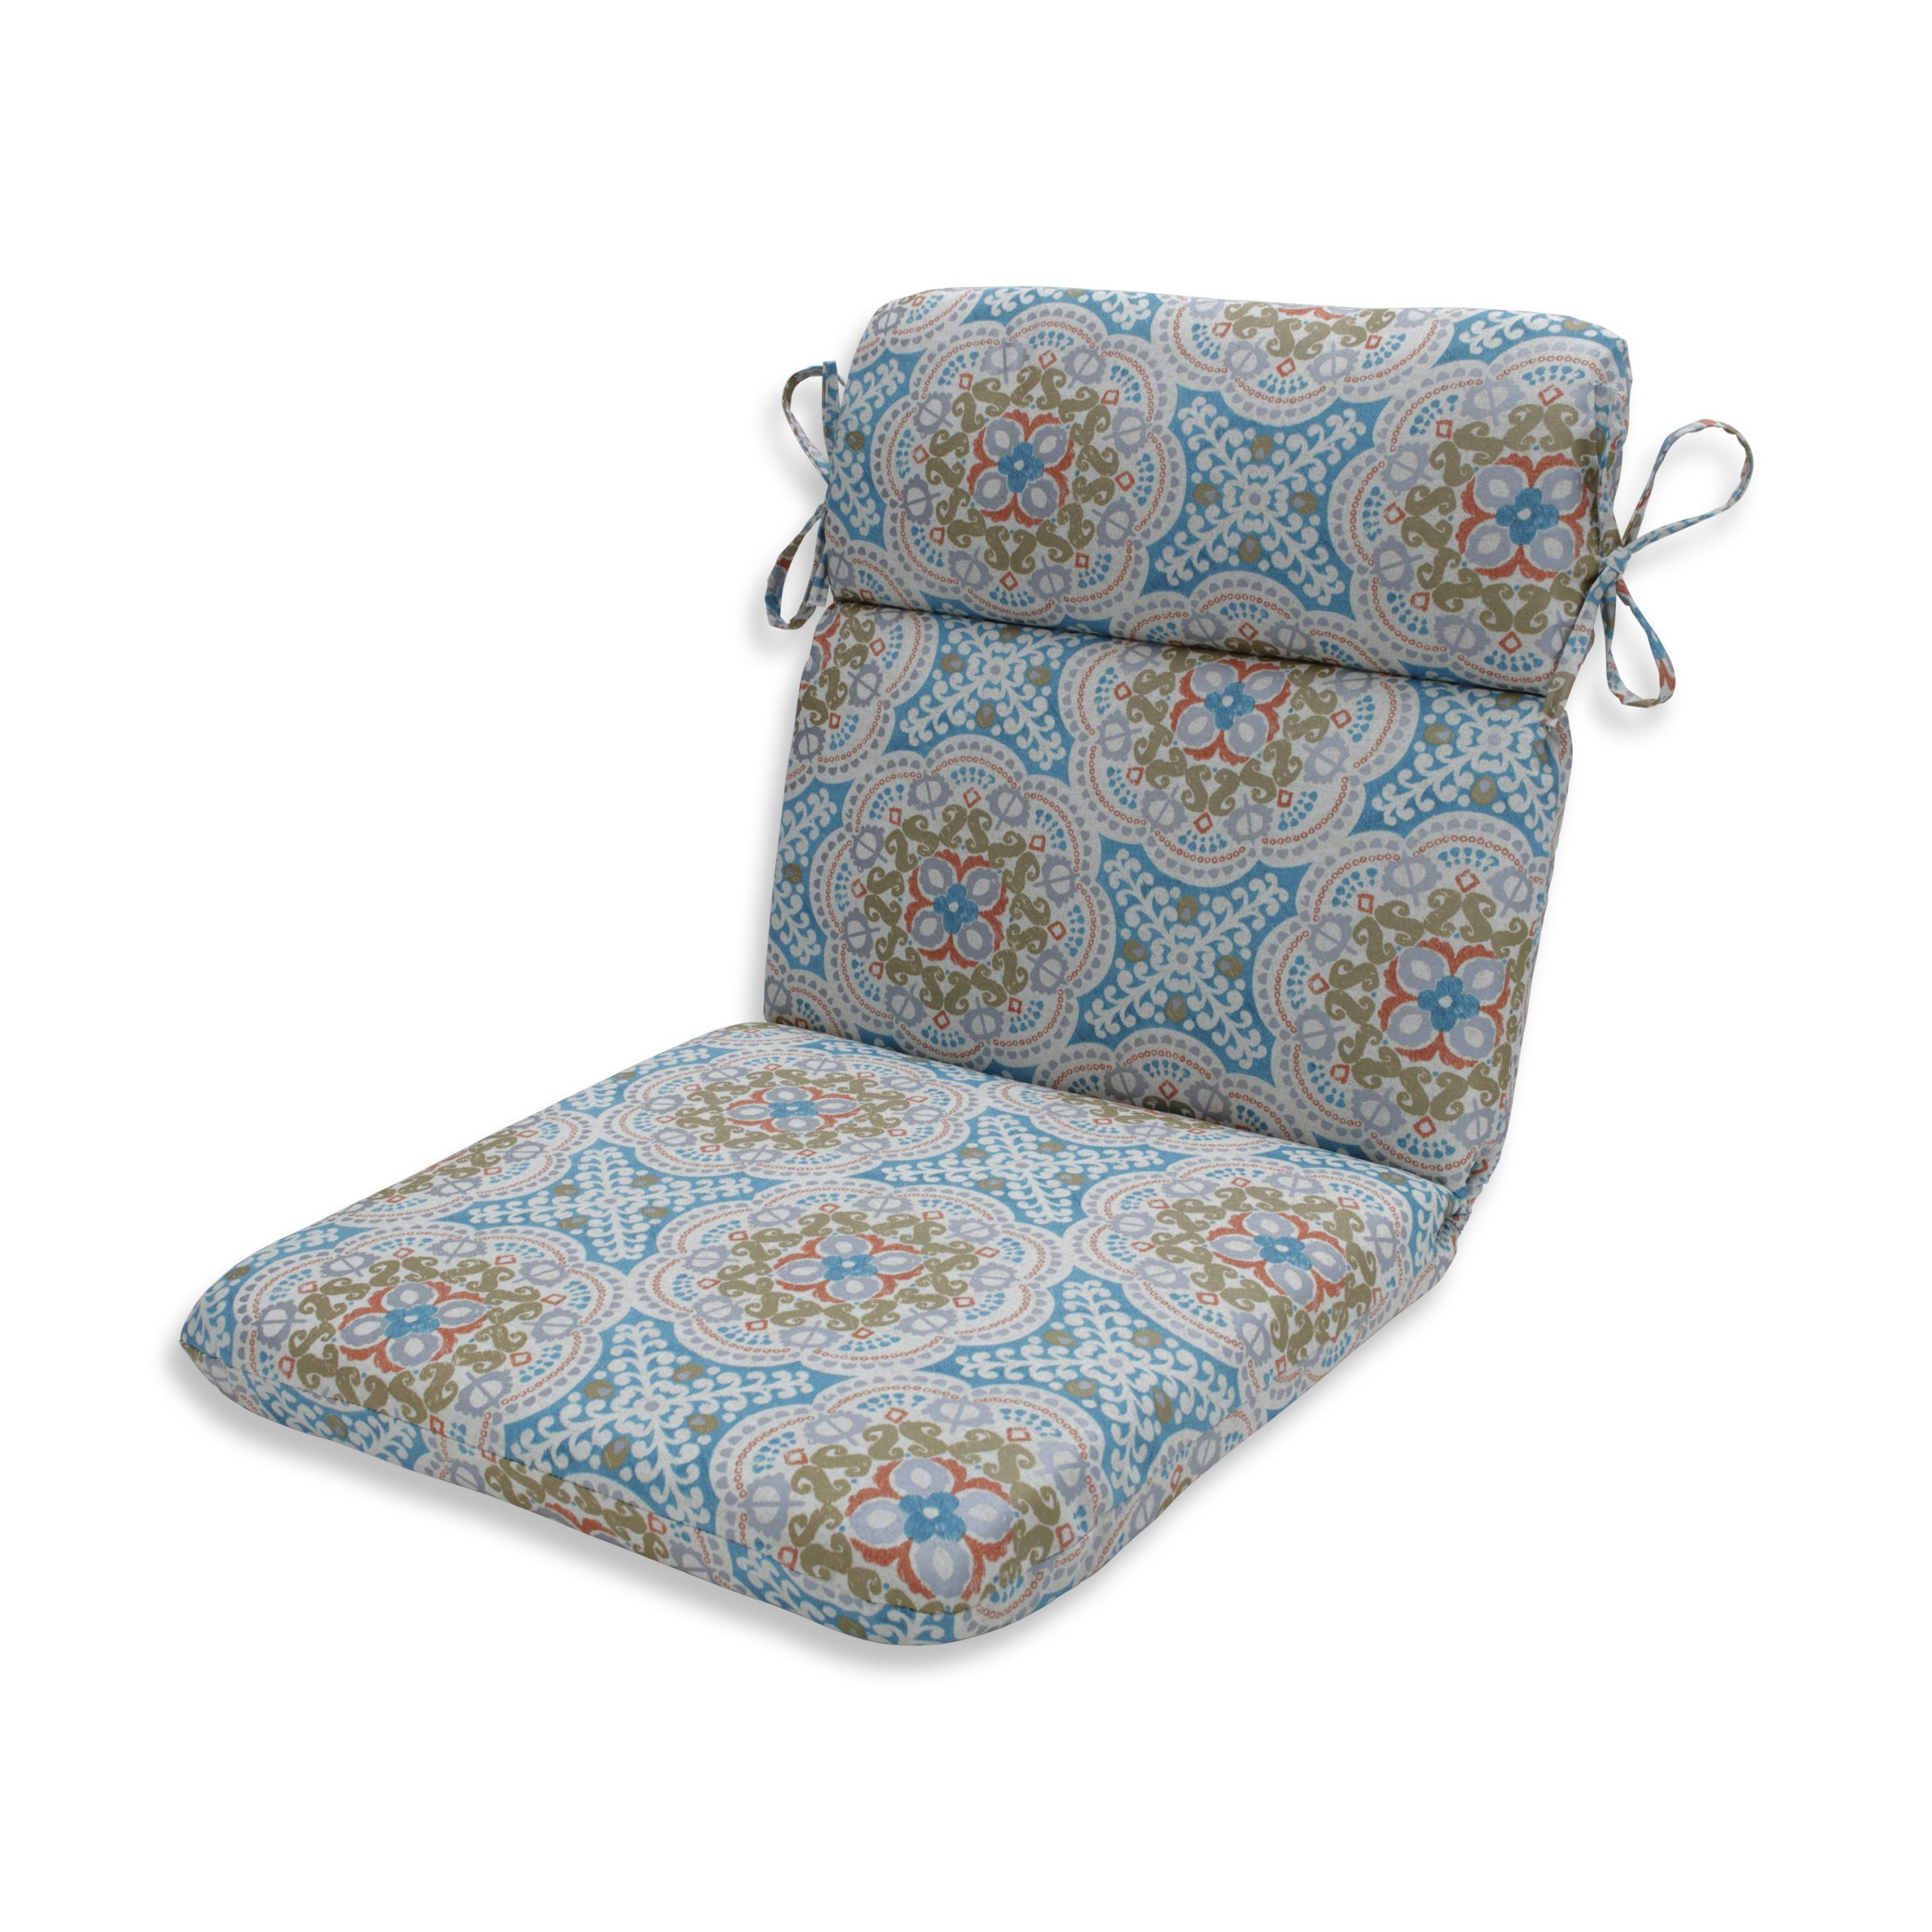 Details About Pillow Perfect Outdoor / Indoor Astrid Aqua Blue Rounded Corners Chair Cushion Pertaining To Most Up To Date Astrid Wicker Patio Sofas With Cushions (View 15 of 25)